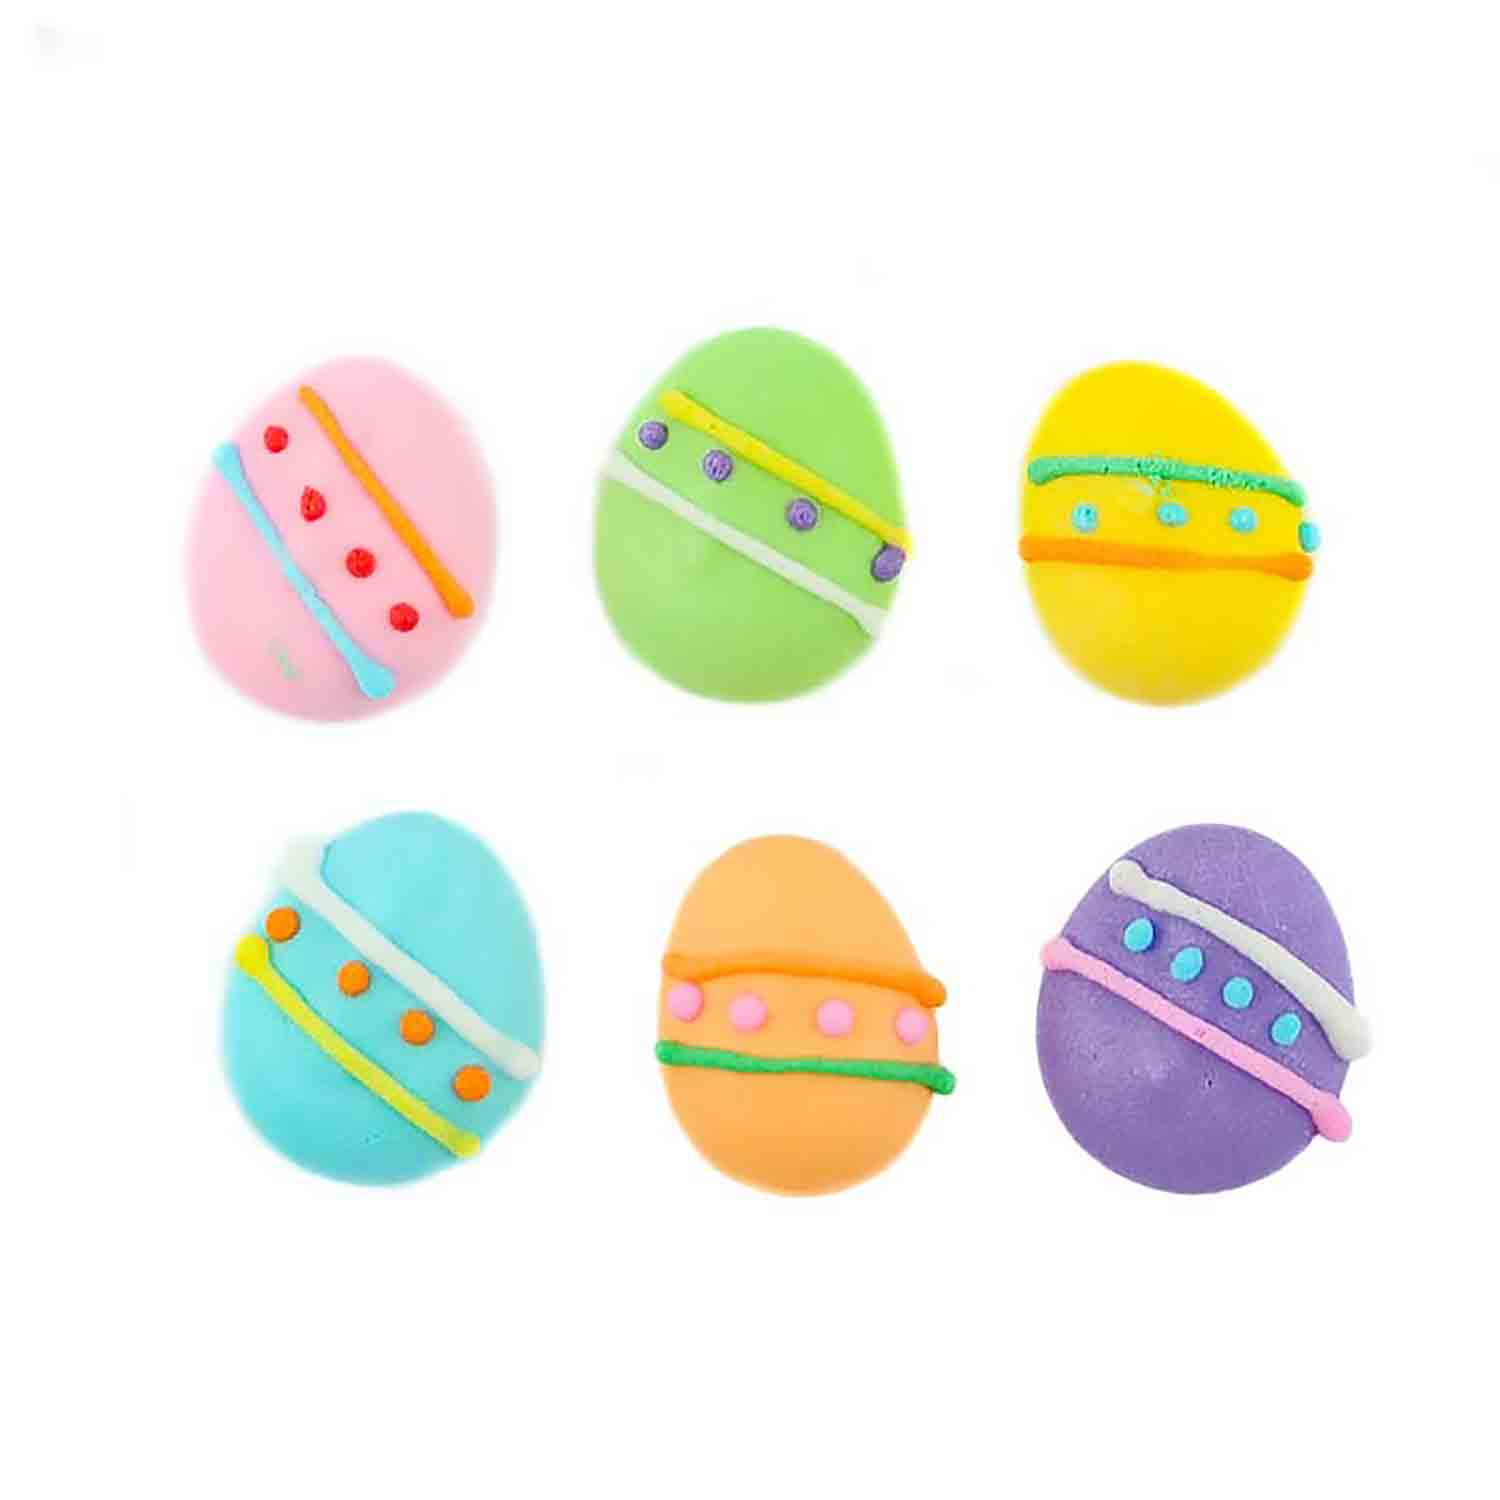 Icing Layons - Easter Egg Charms